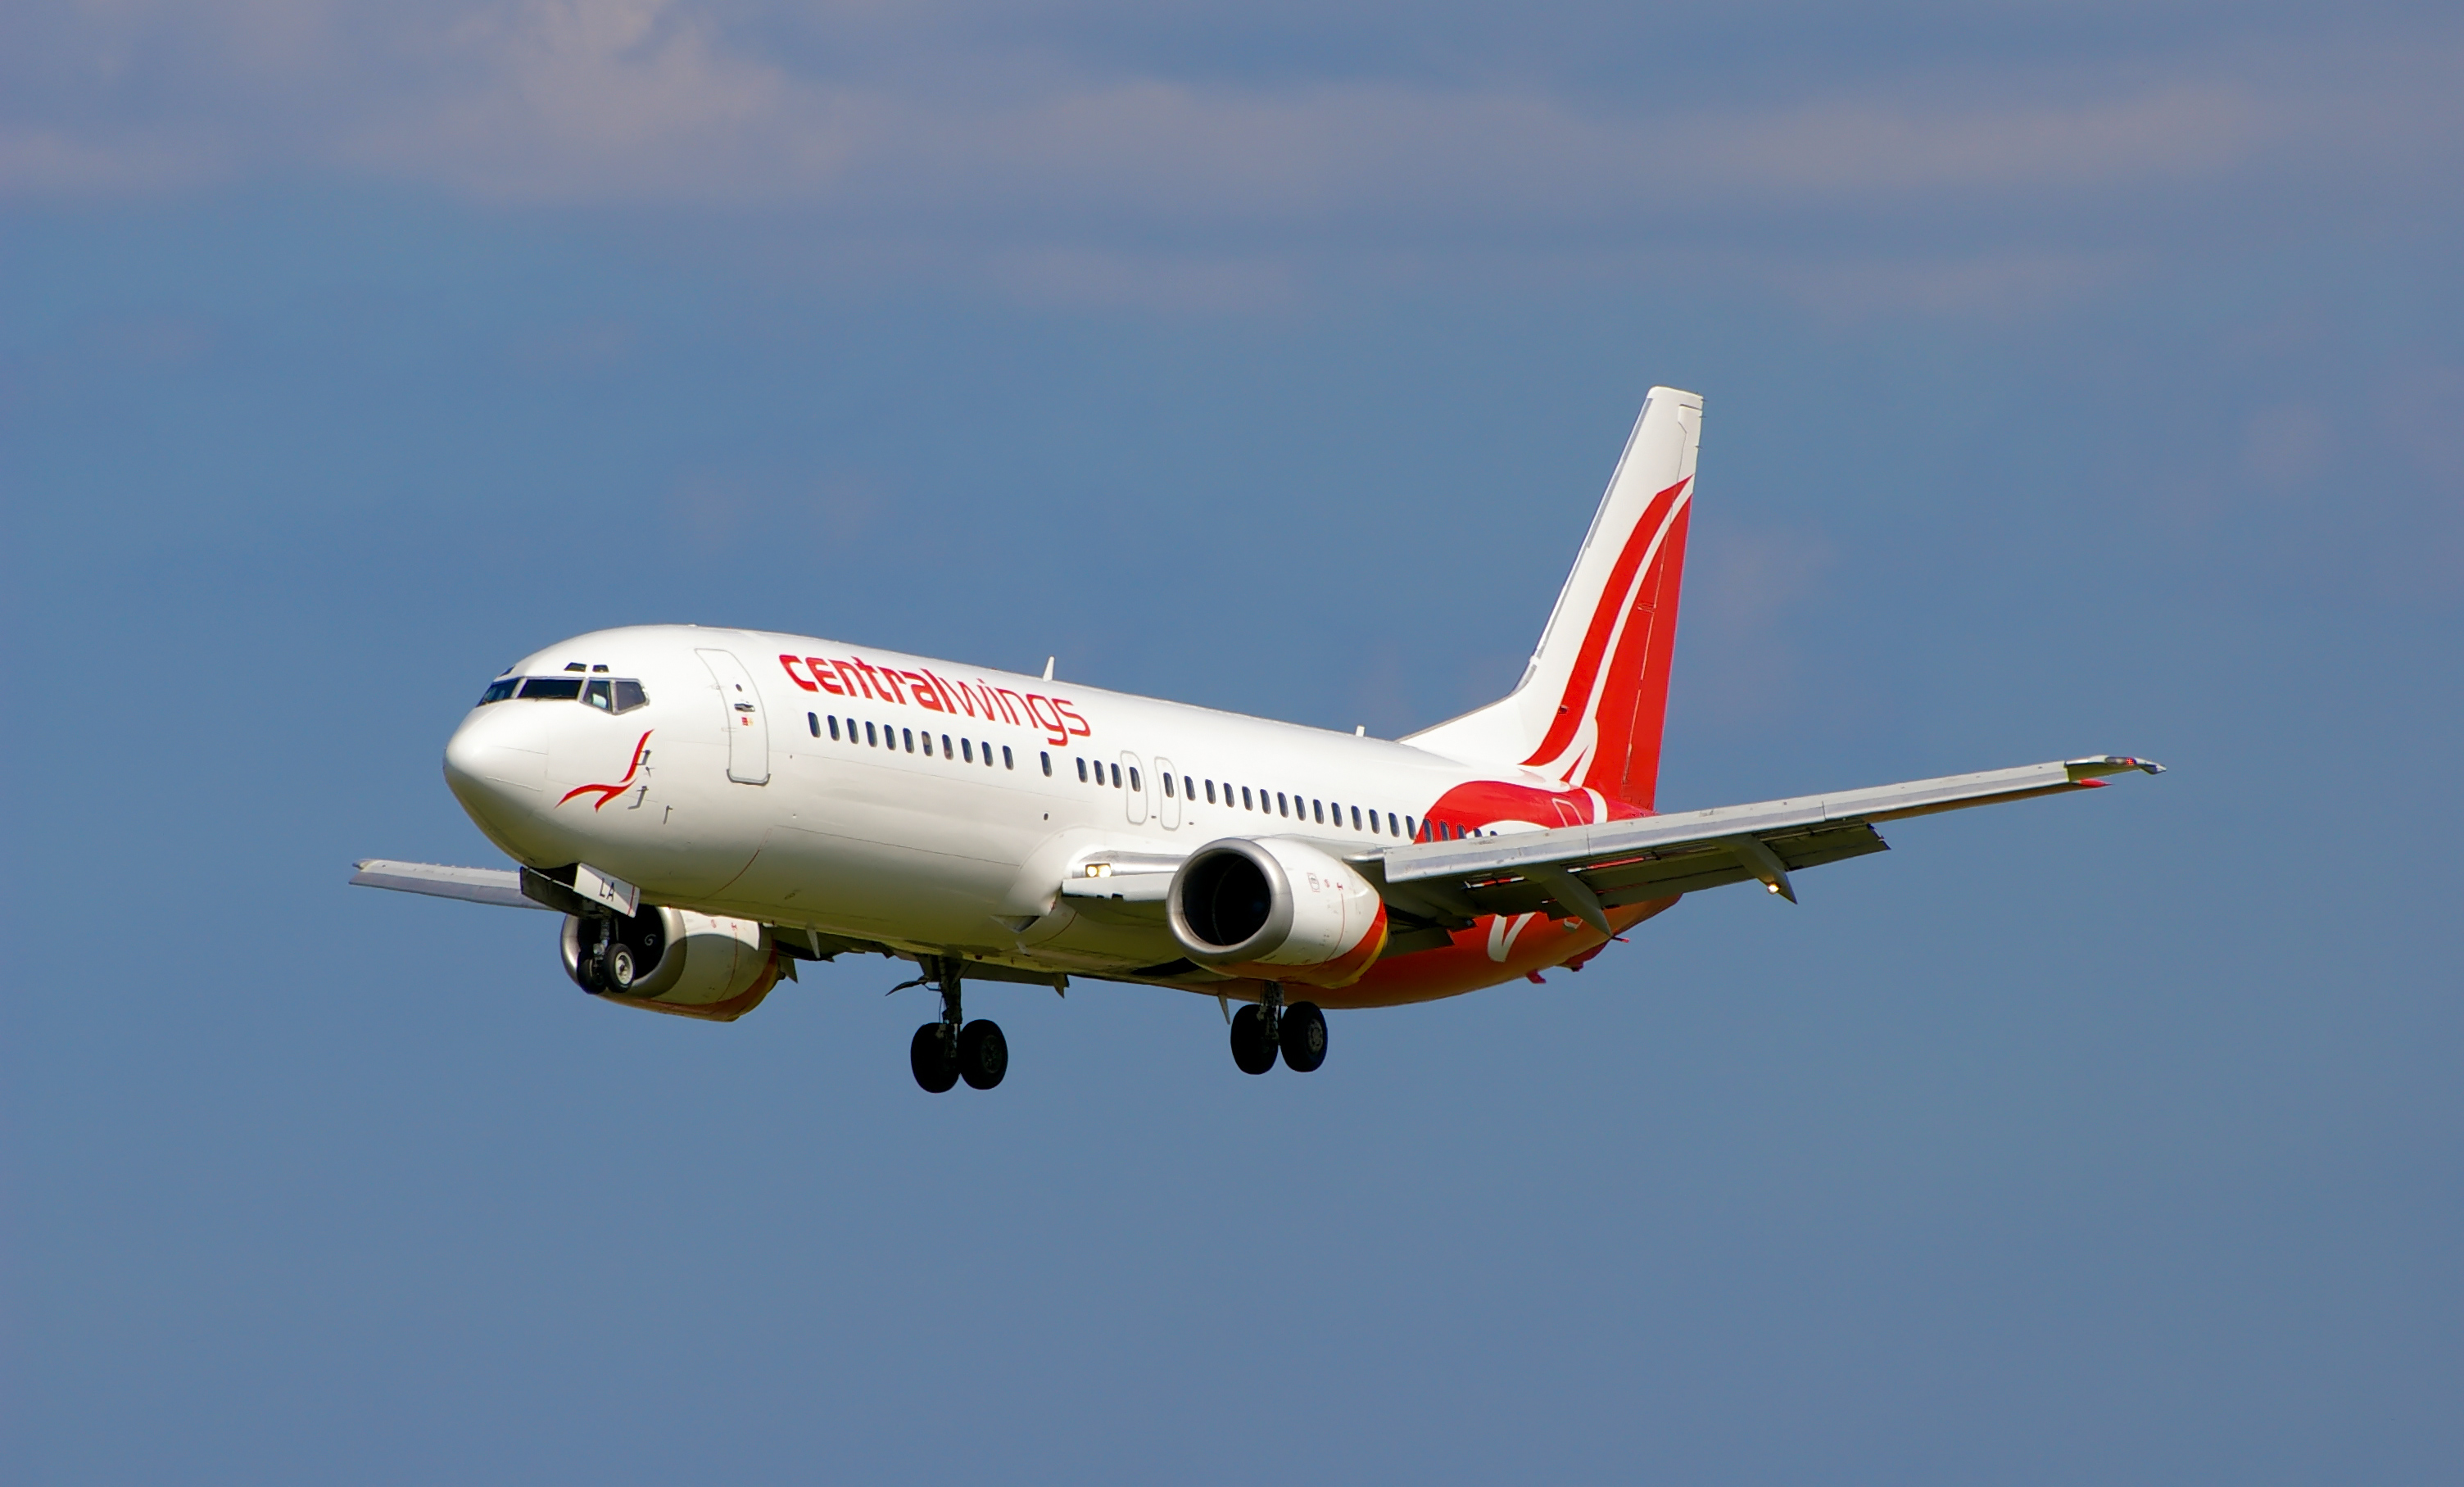 Boeing 737 Classic - Simple English Wikipedia, the free encyclopedia